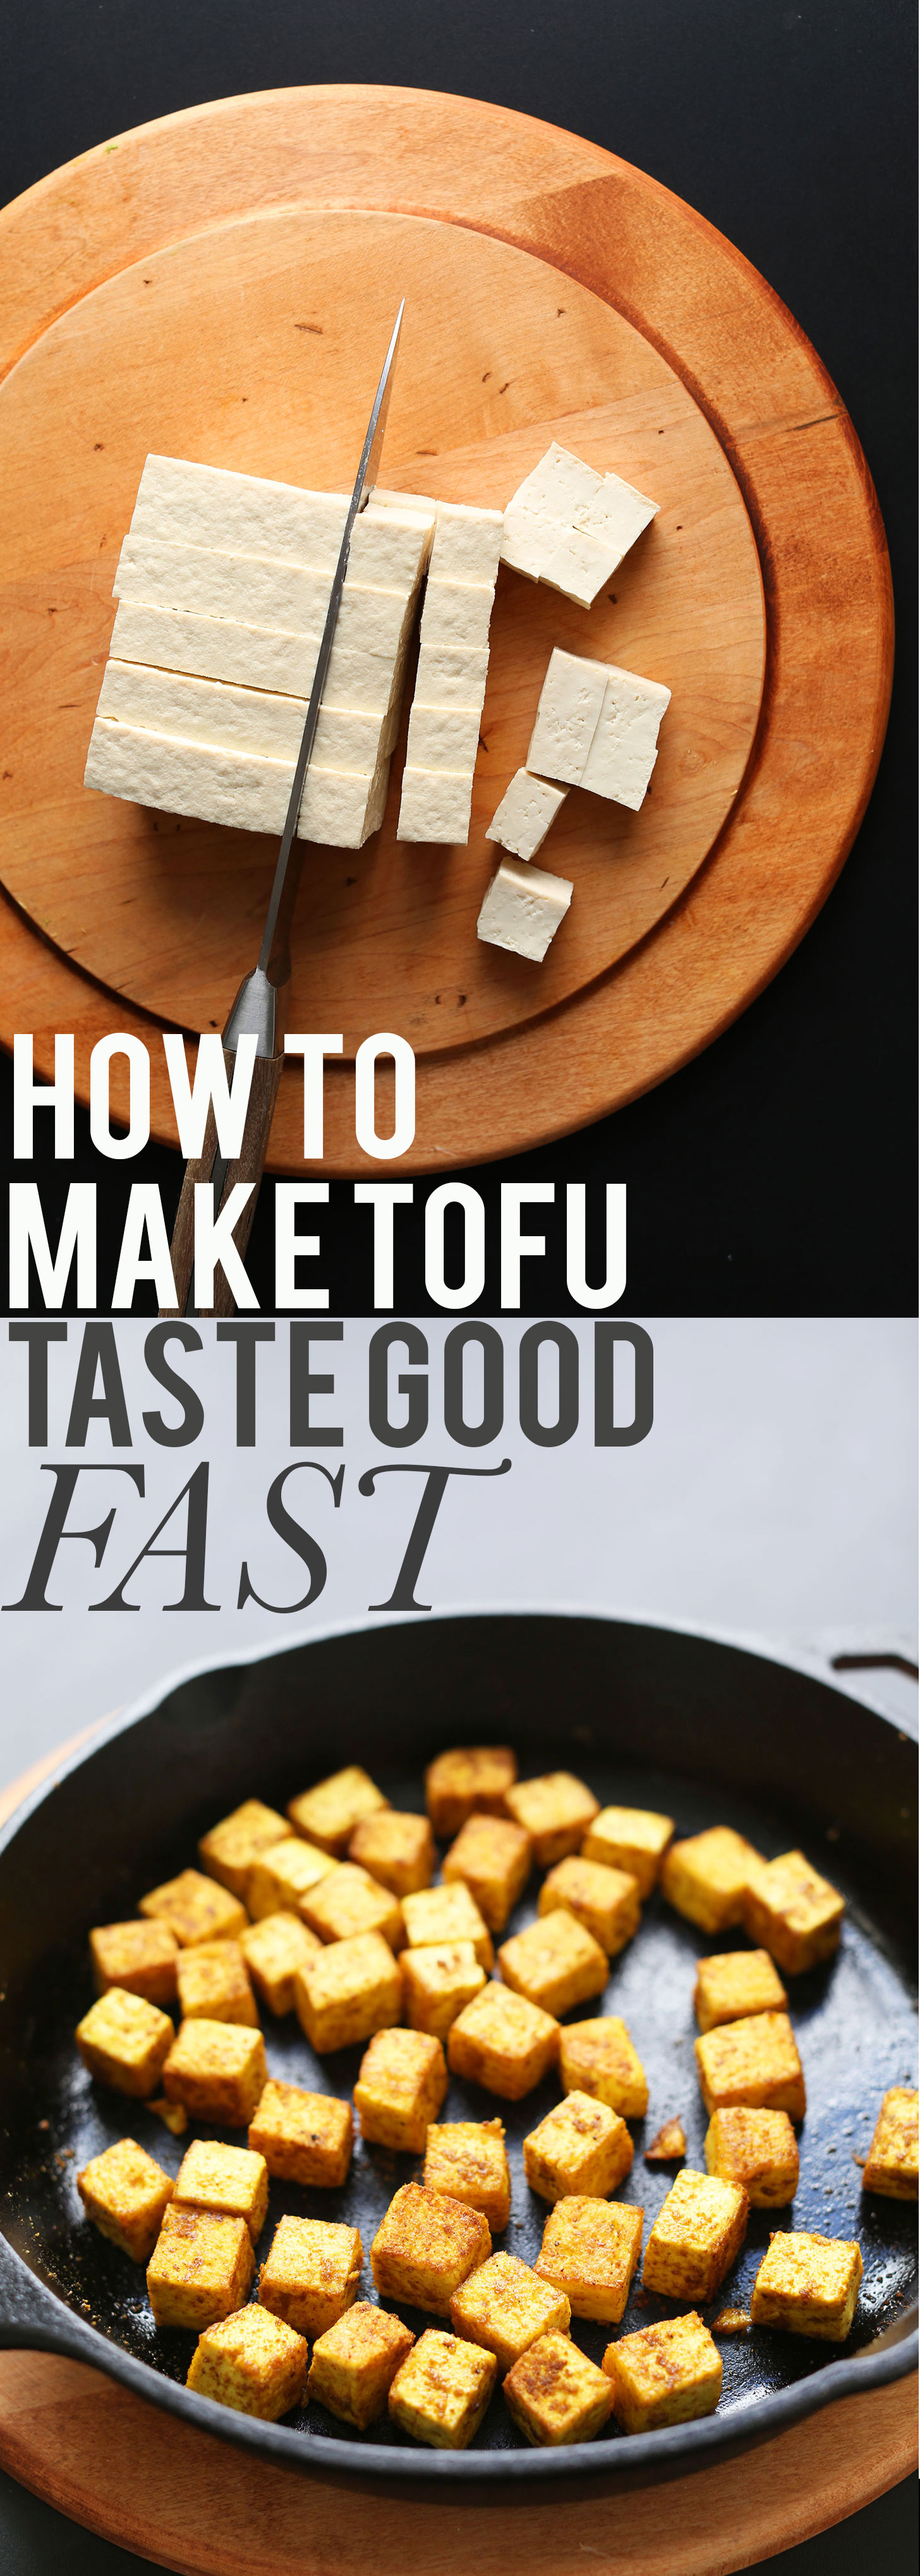 How-to-make-tofu-taste-good-fast-in-20-minutes-a-special-method-crisps-it-up-without-frying-vegan-glutenfree-tofu-recipe